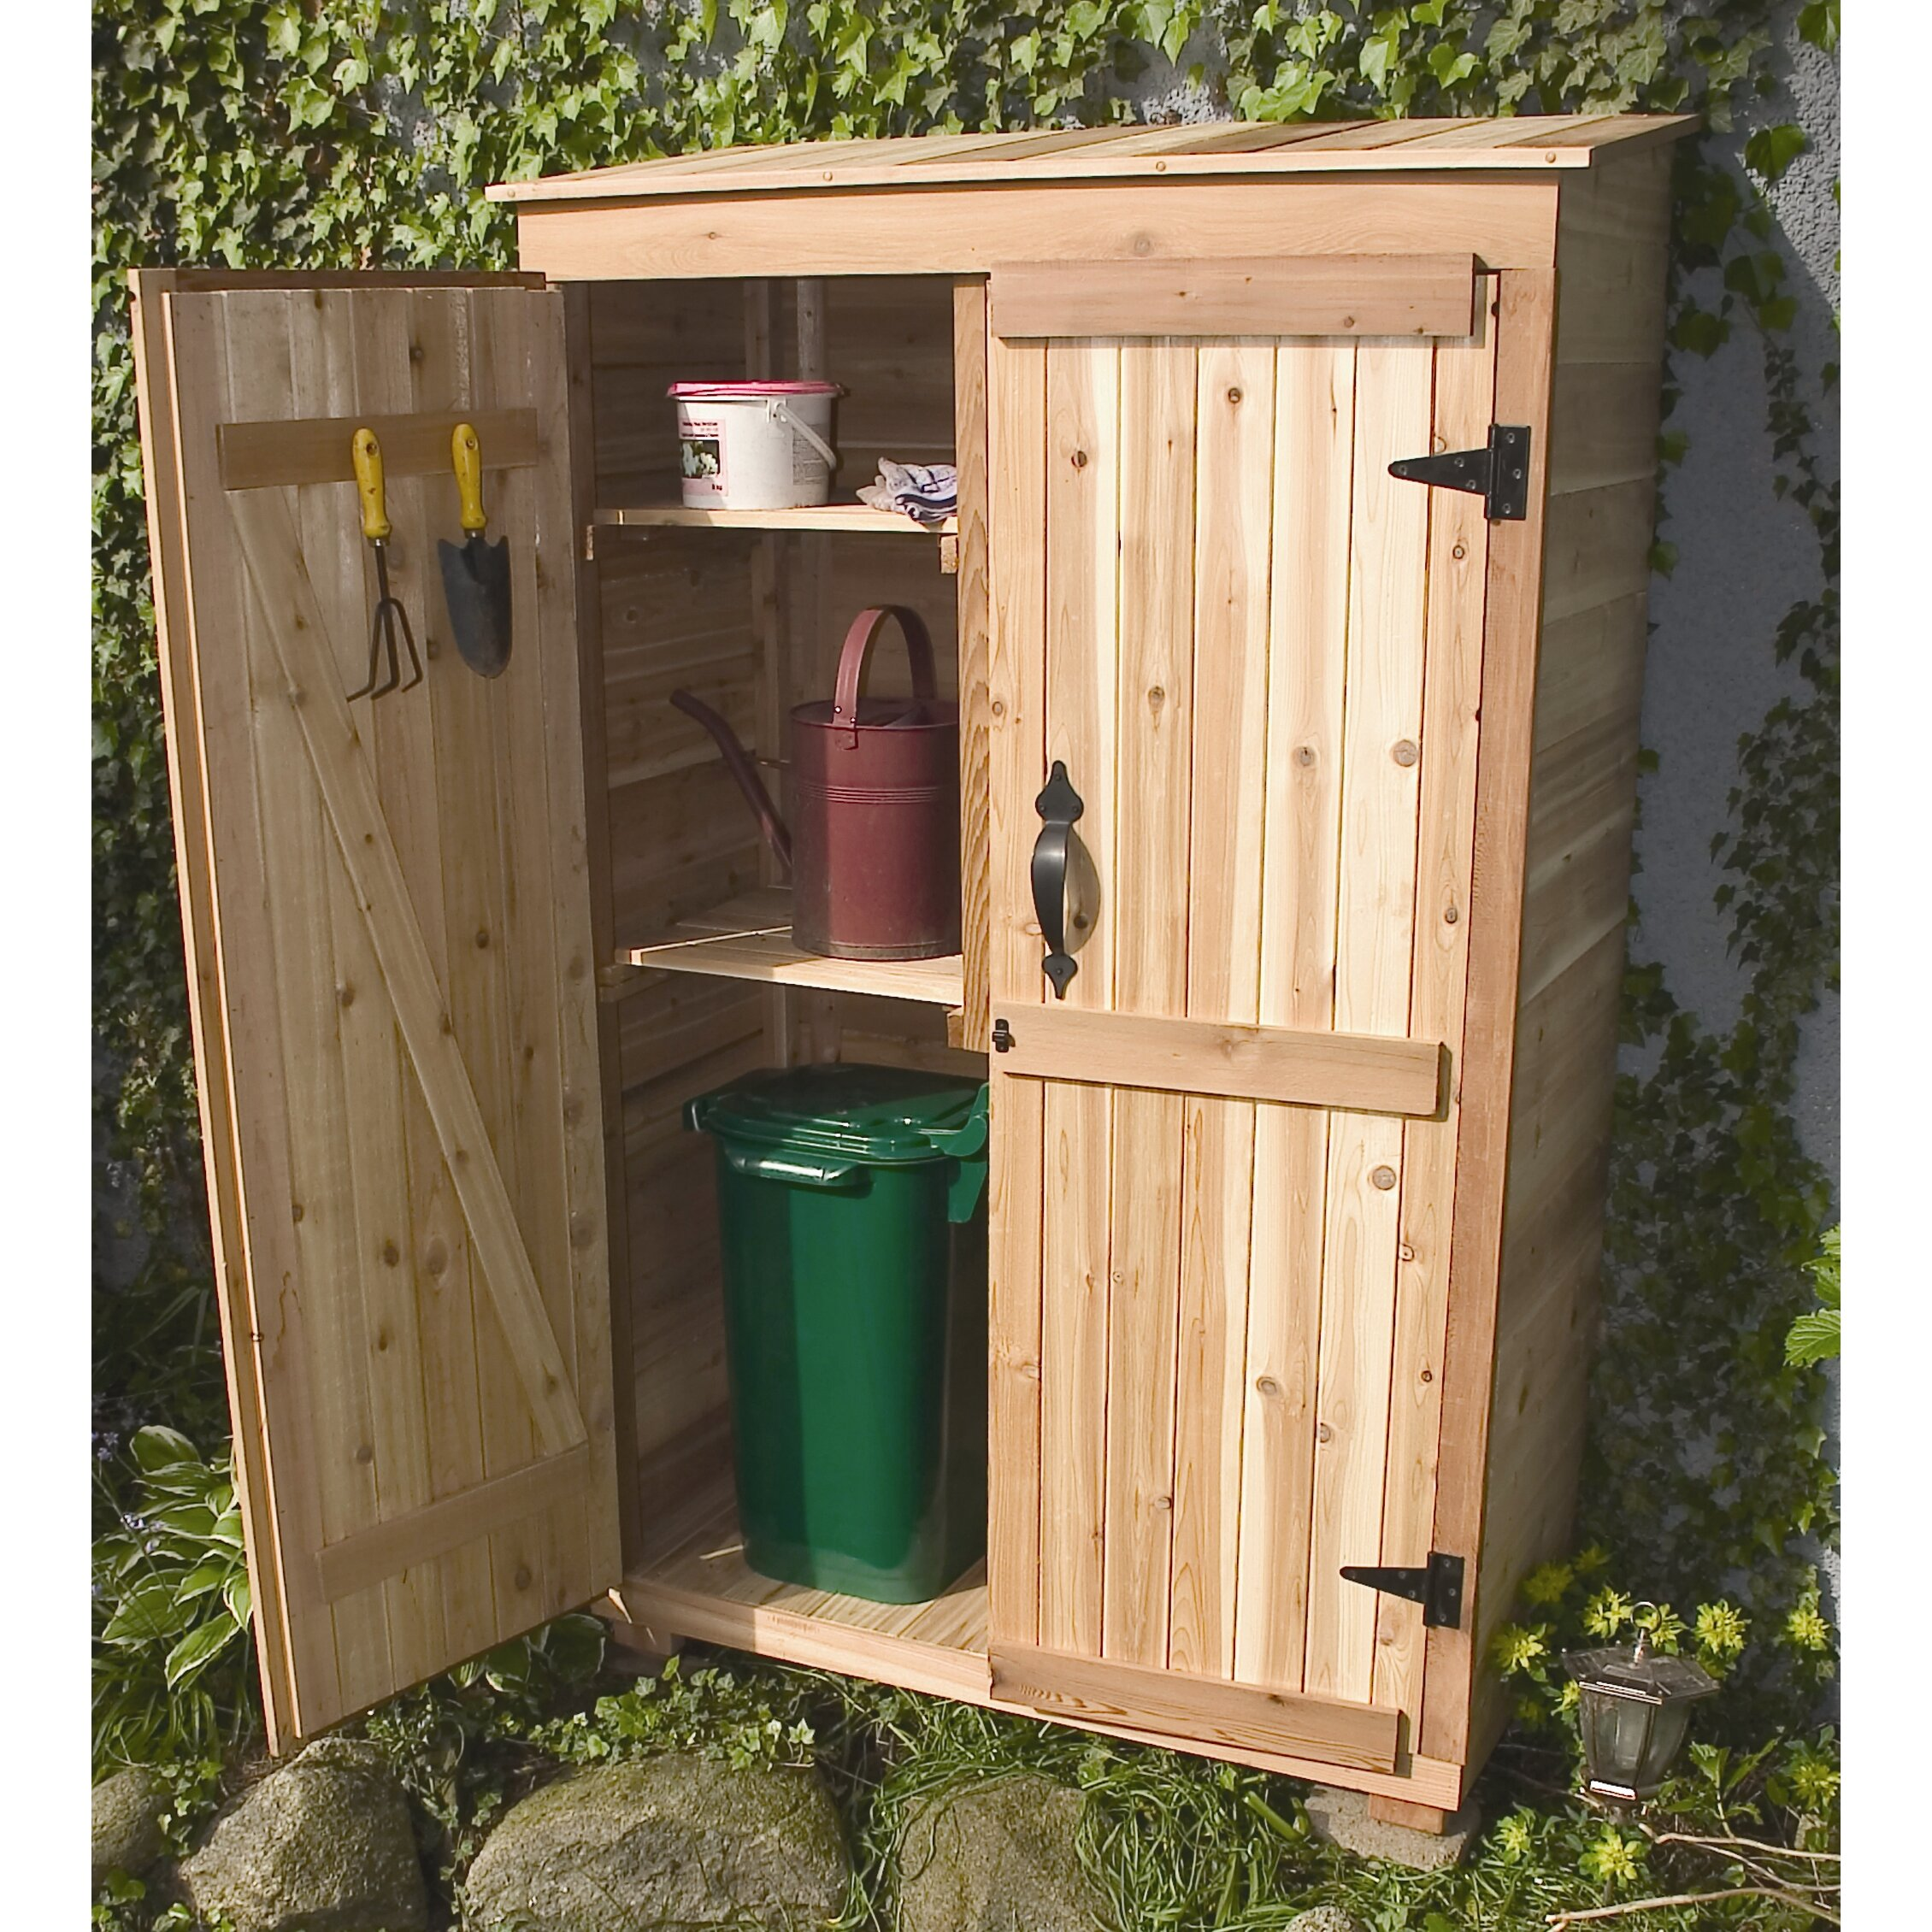 Outdoor living today garden chalet 4 ft w x 2 ft d wood for Garden shed 4 x 2